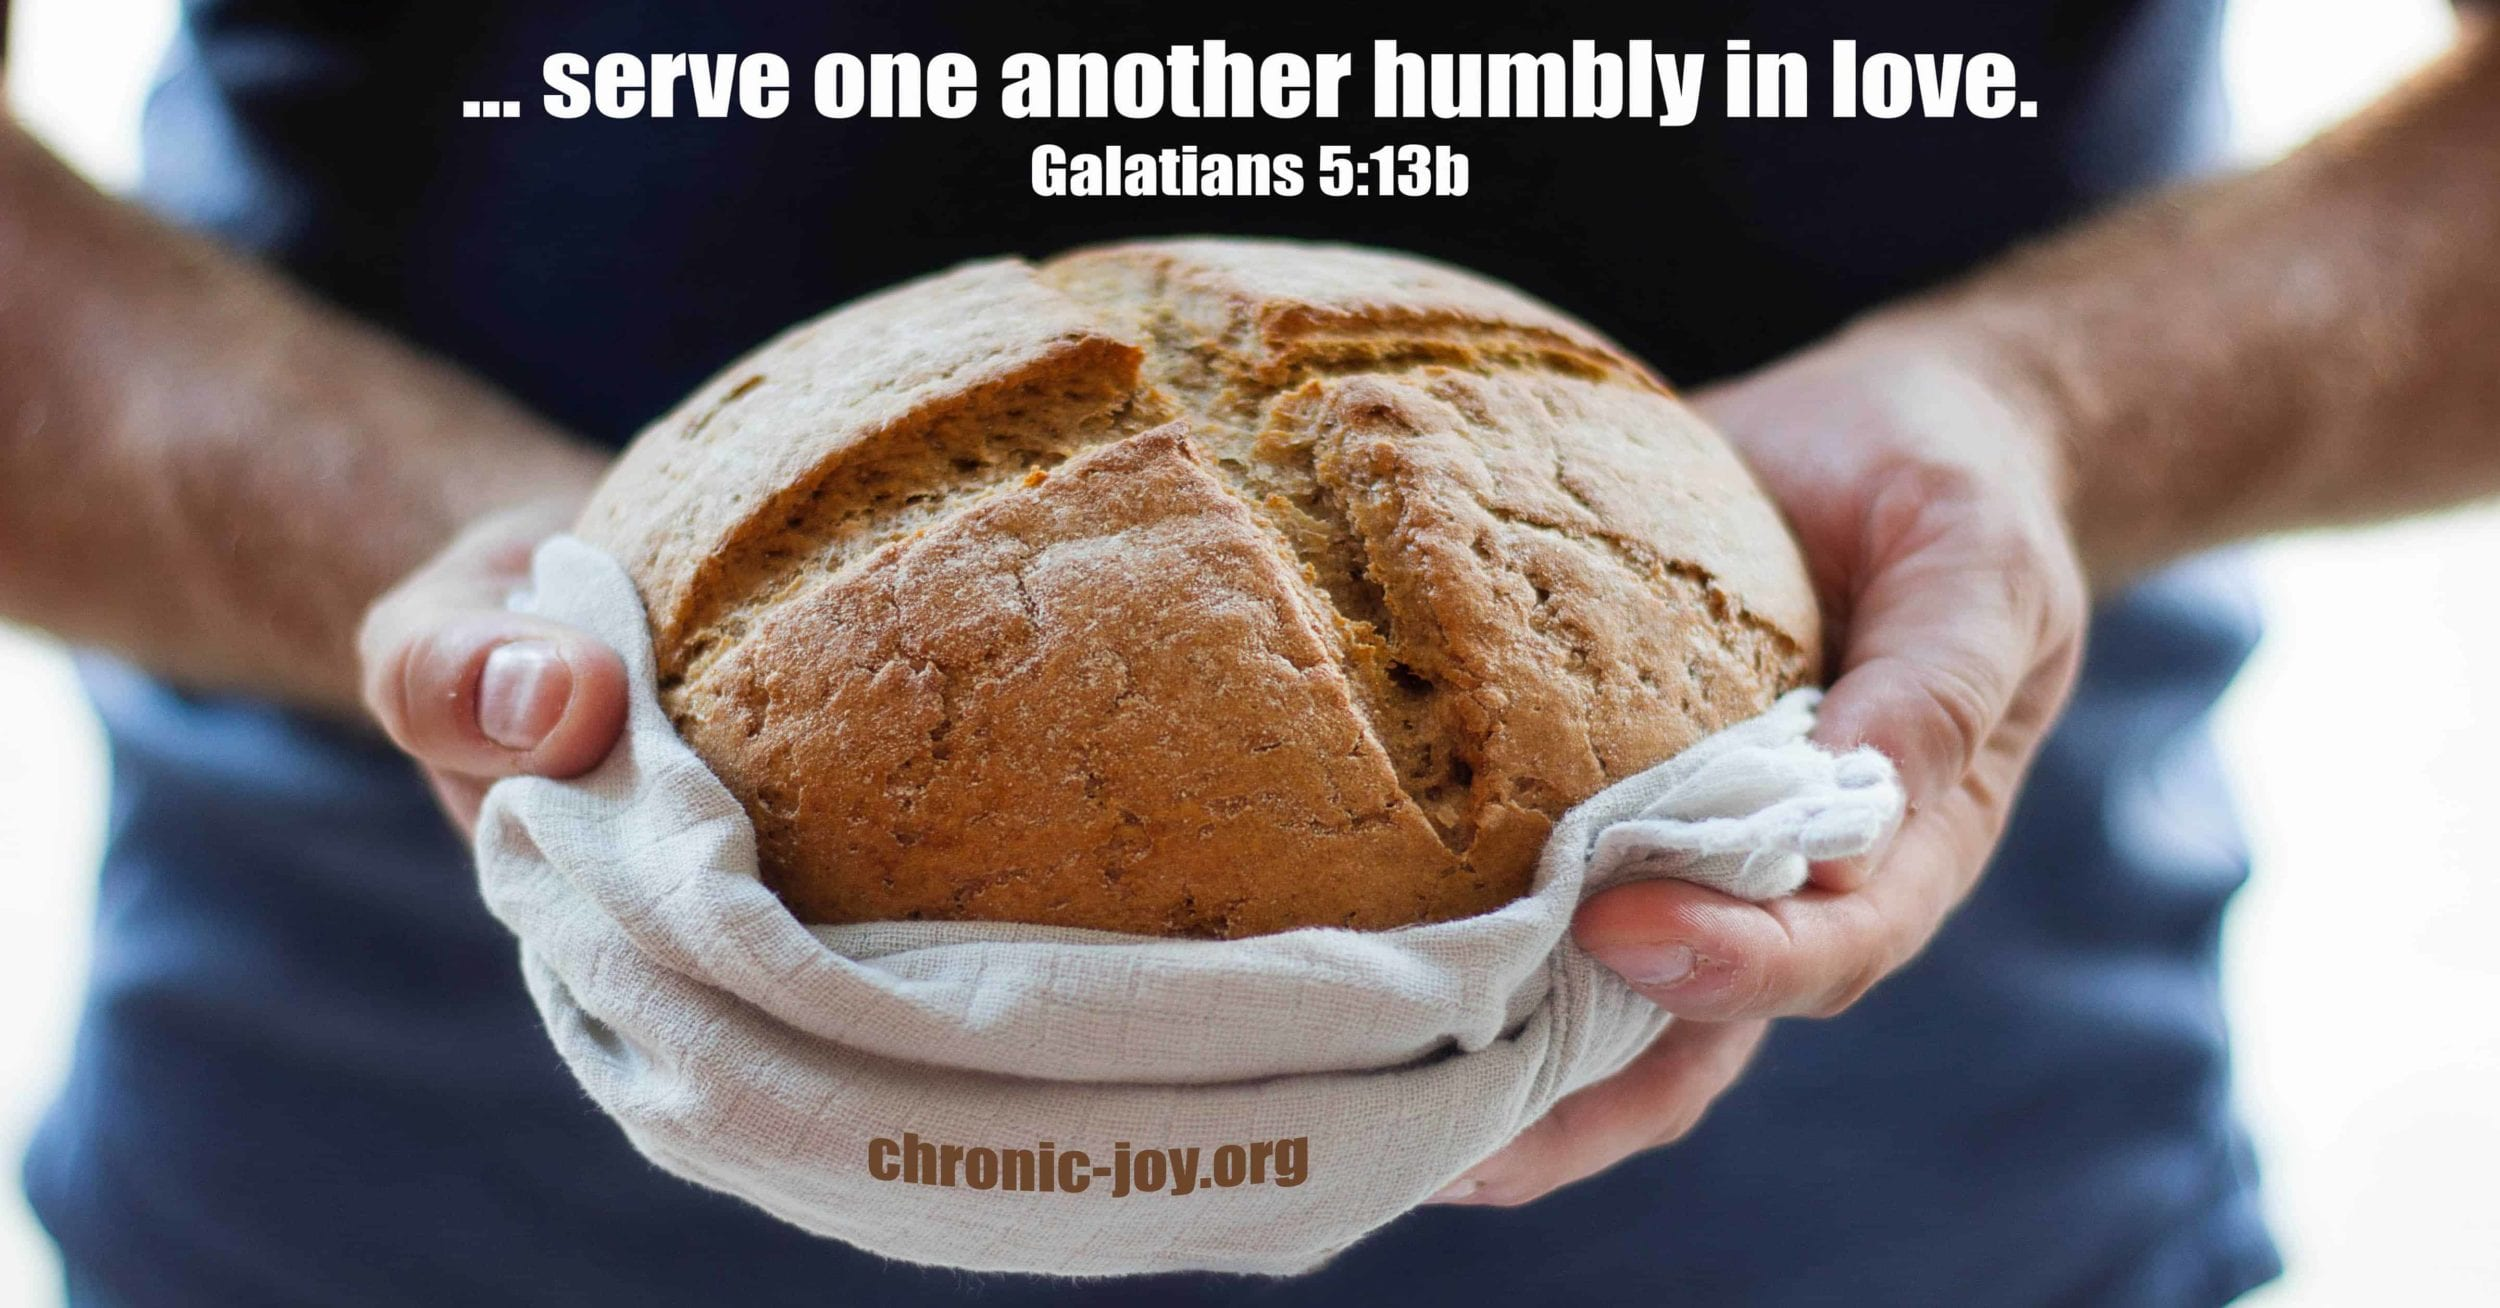 ... serve one another humbly in love.